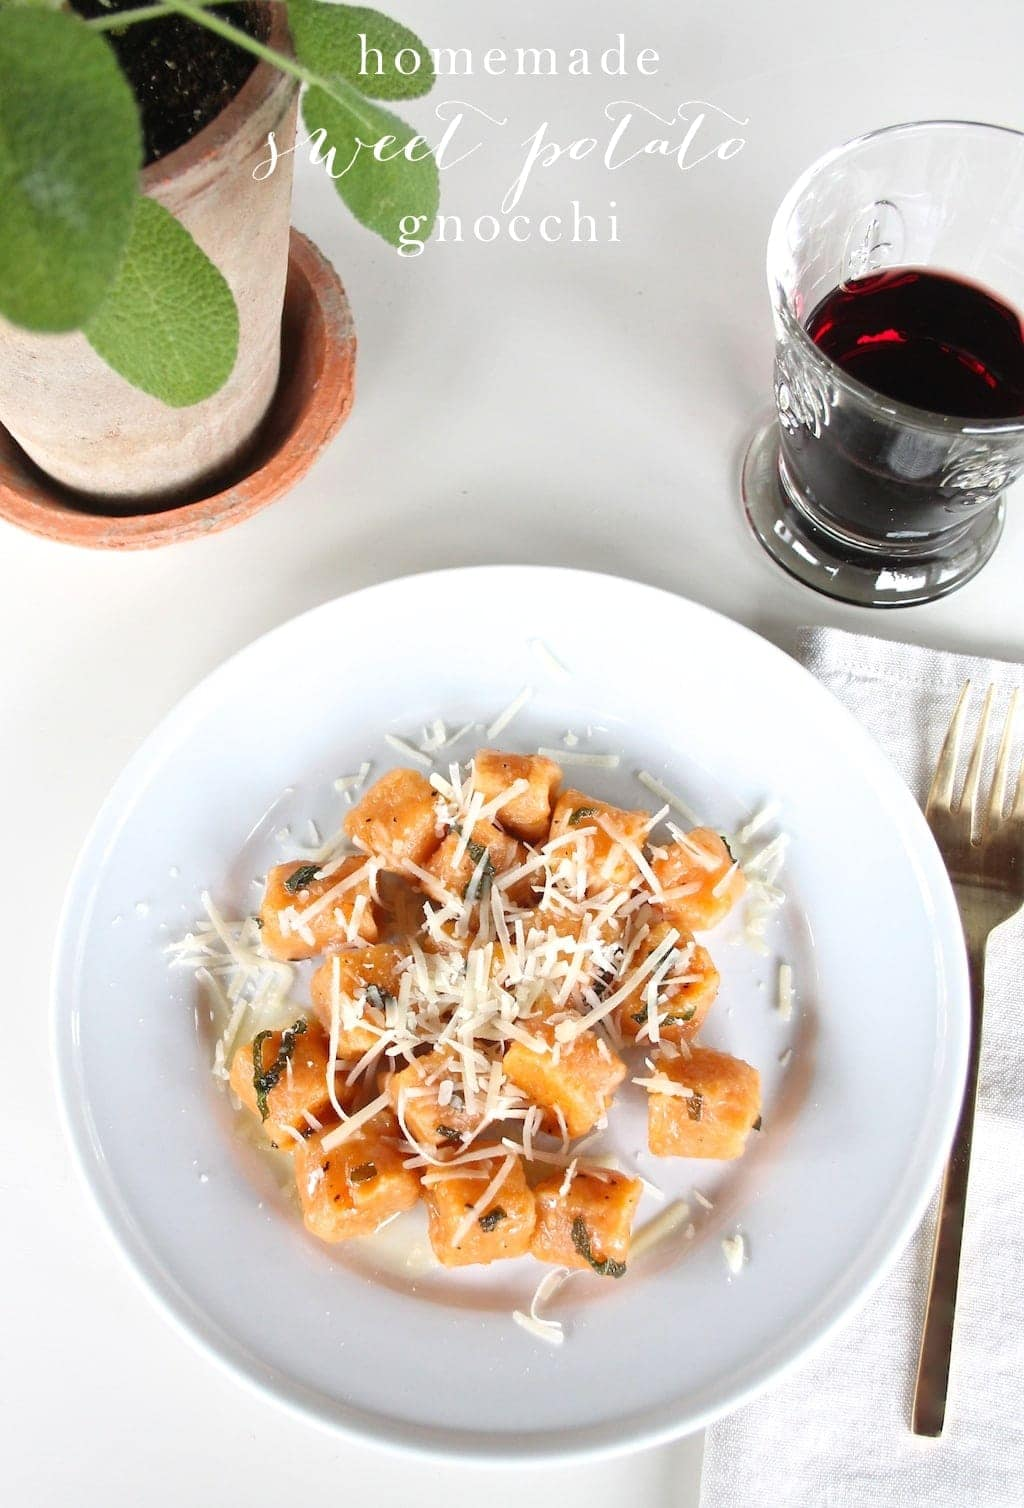 Pillows of Heaven | Homemade Sweet Potato Gnocchi